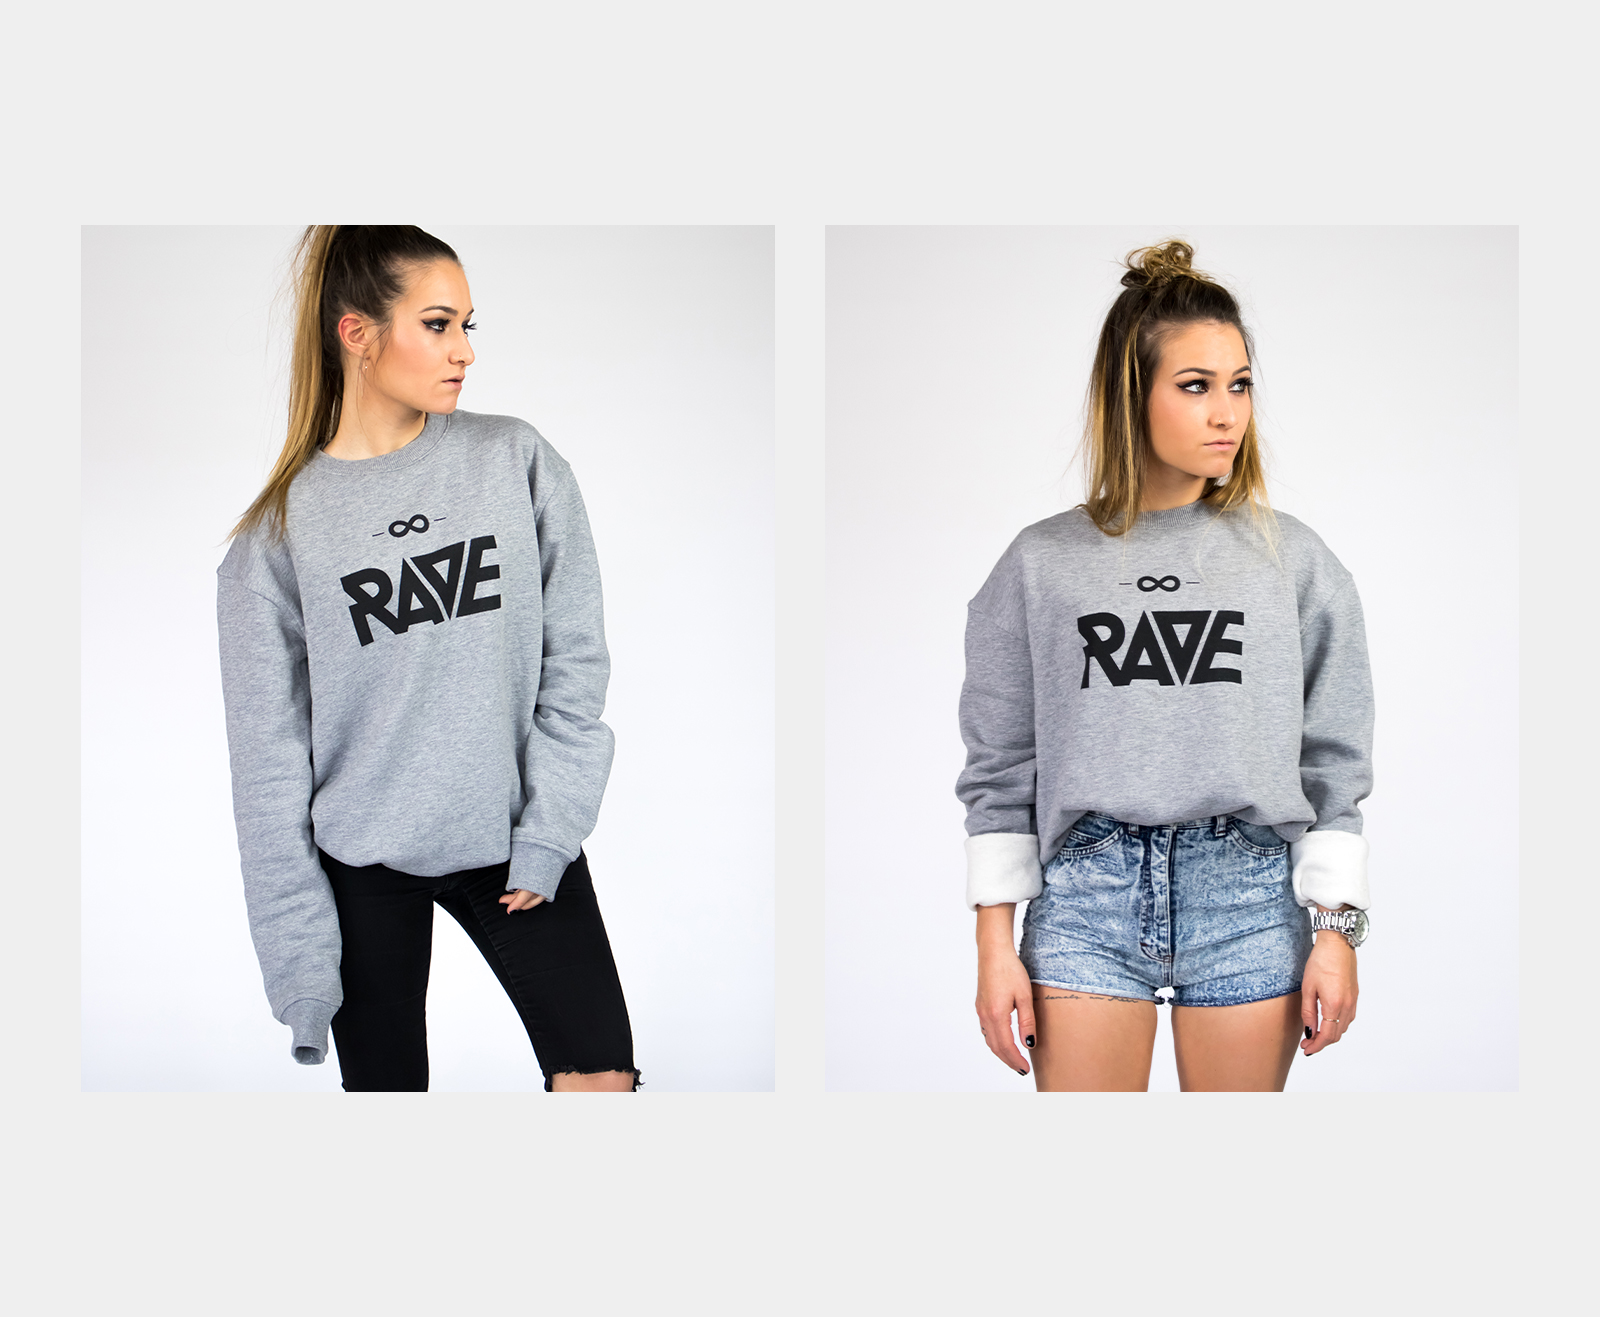 rave-clothing_produkte10